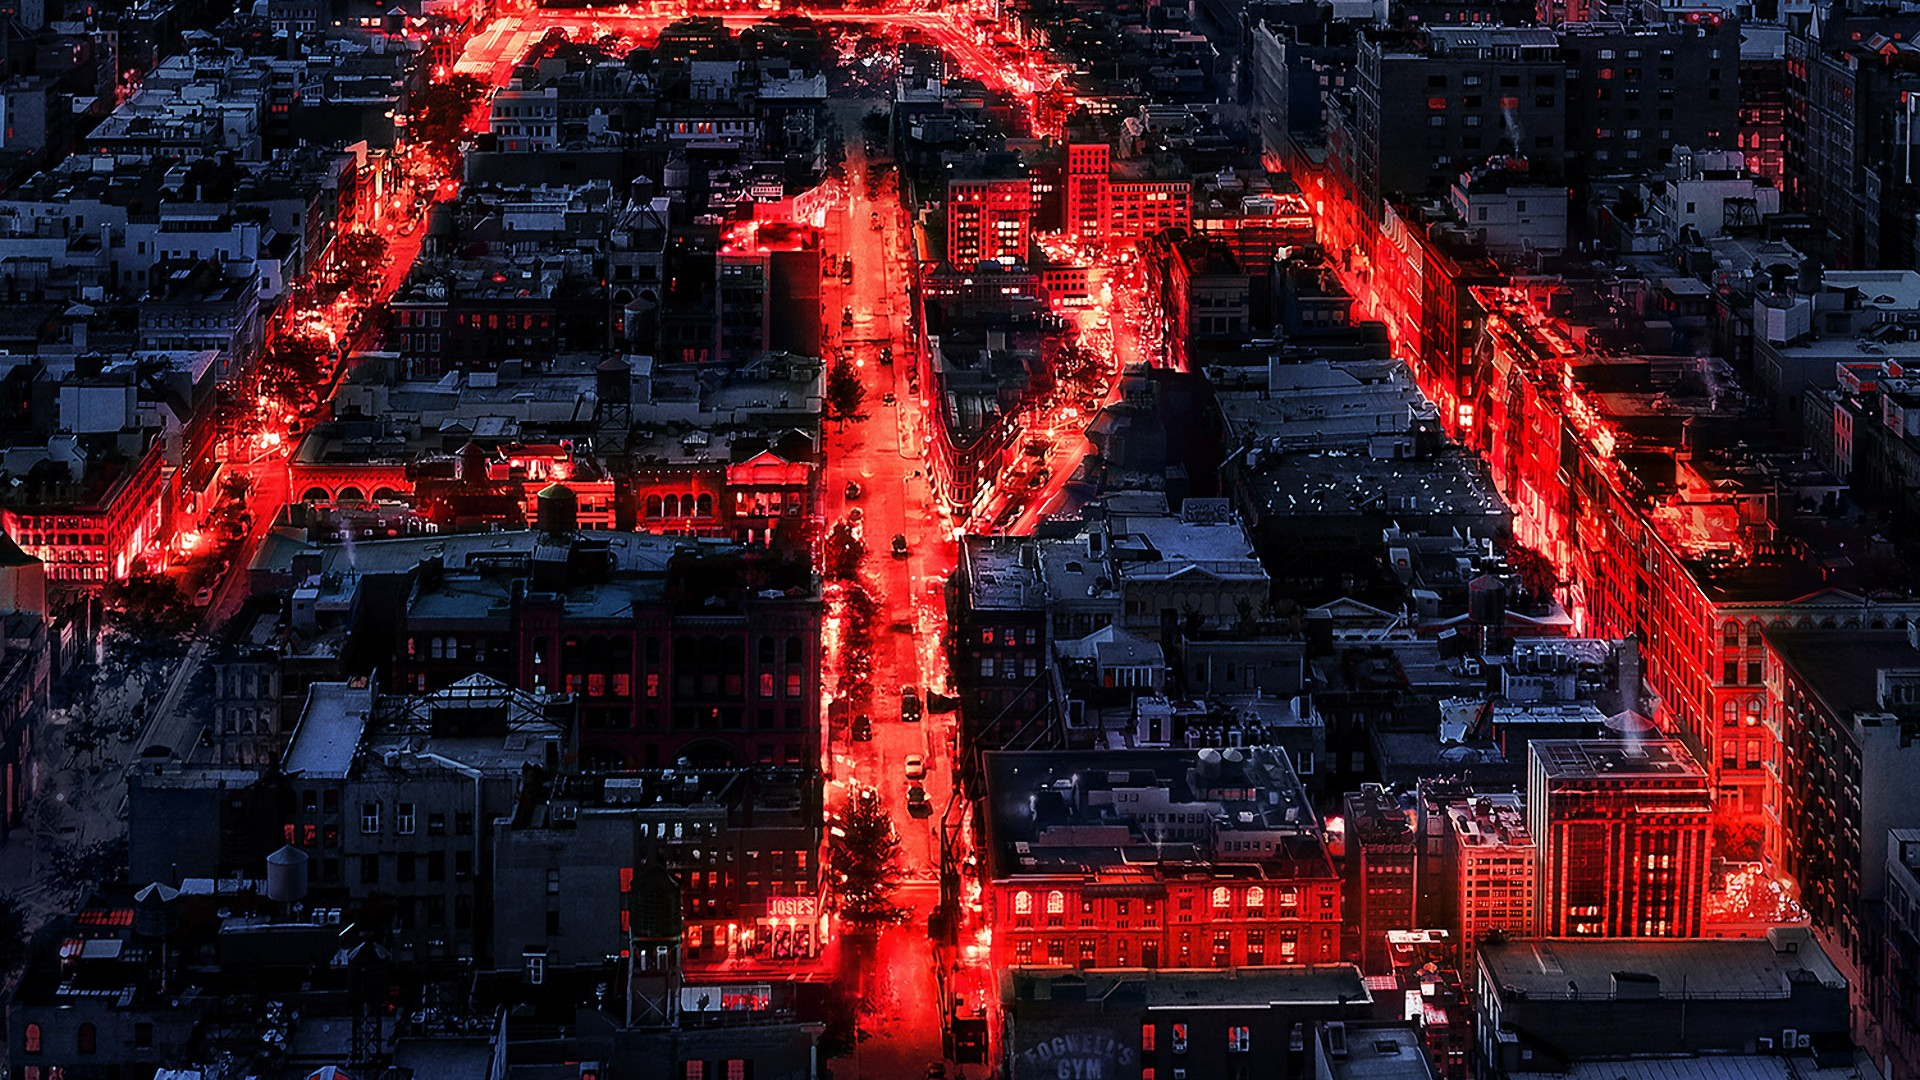 Netflix Daredevil HD Wallpaper - WallpaperSafari